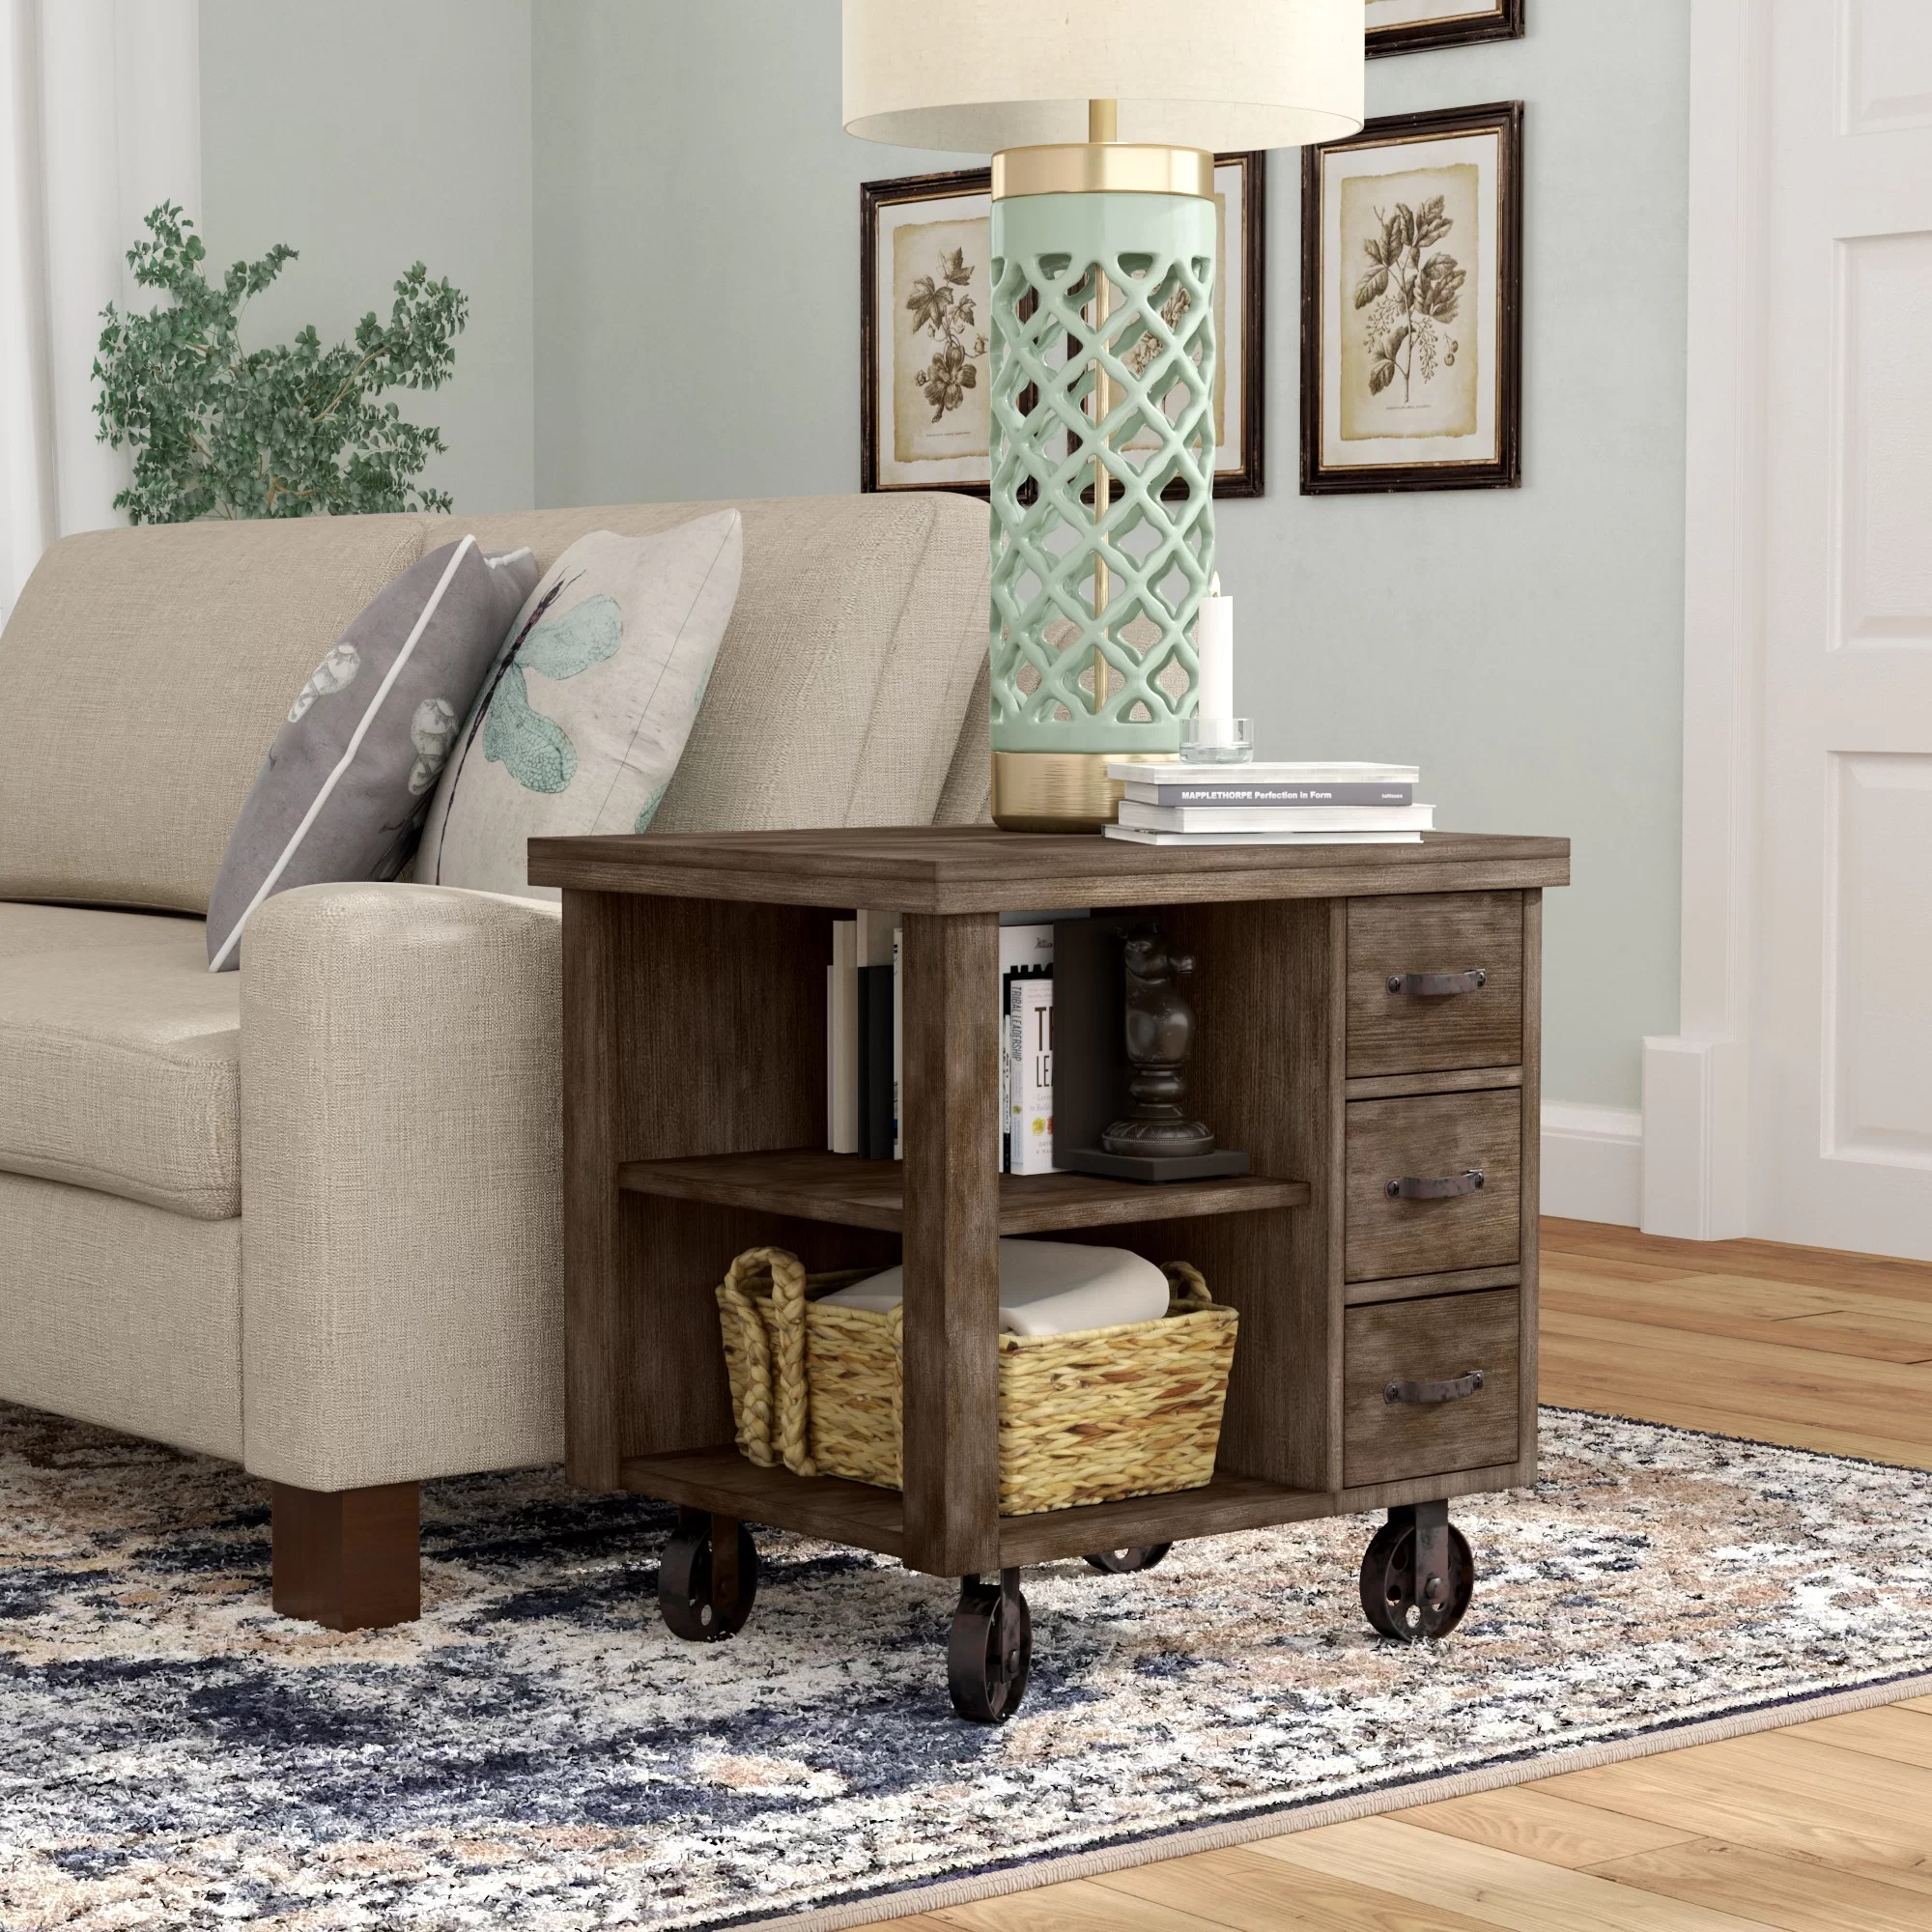 End Table For Living Room Remy End Table With Storage